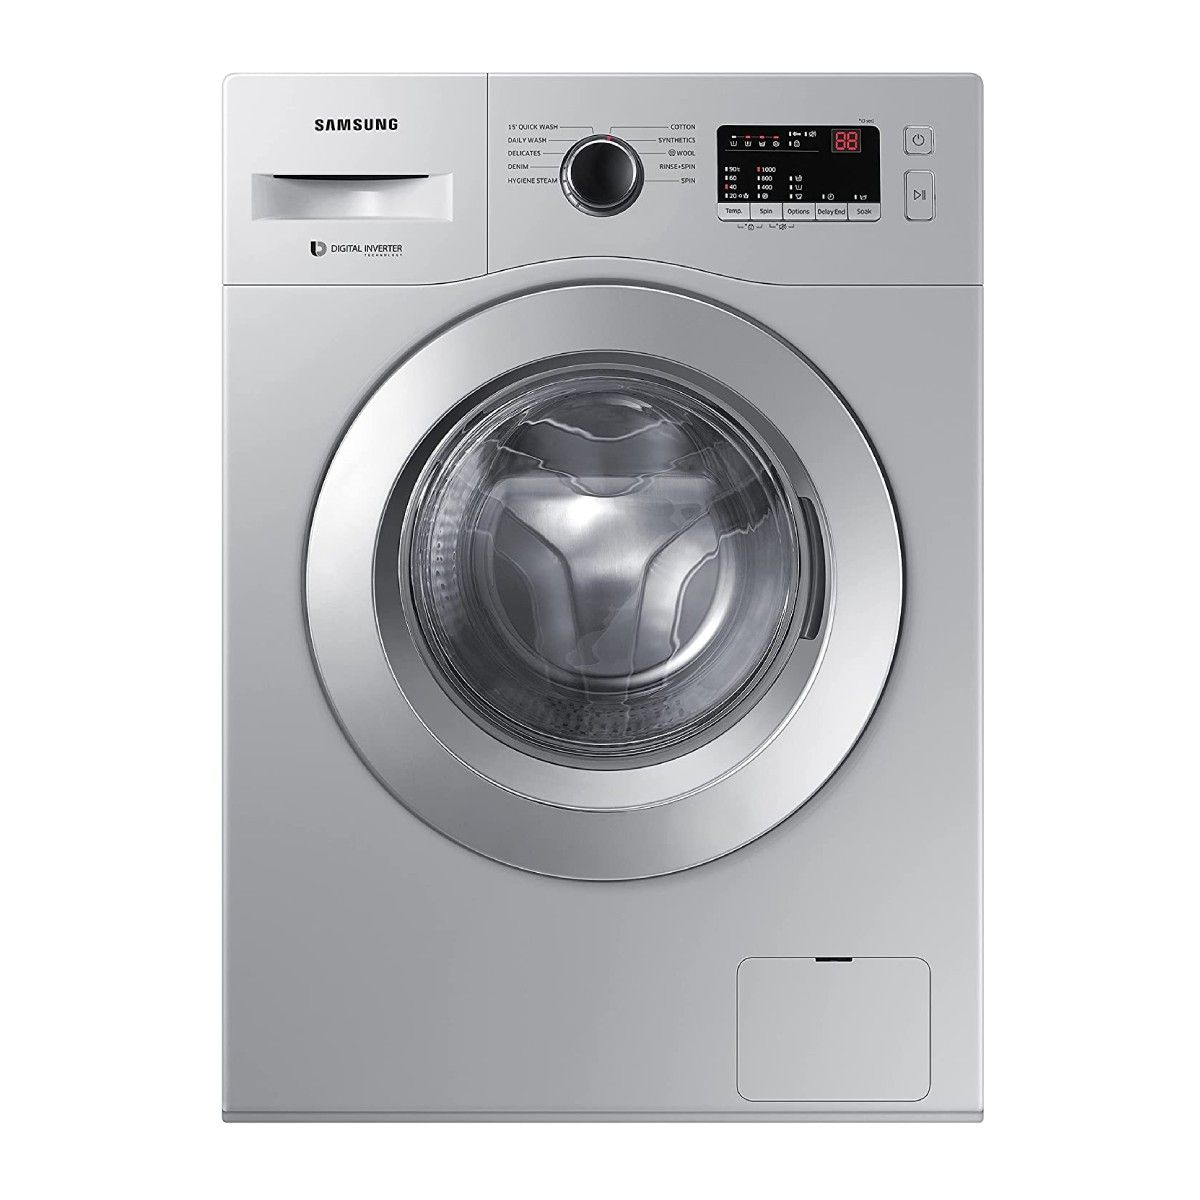 Samsung 6.0 Kg Inverter 5 Star Fully-Automatic Front Loading Washing Machine (WW60R20GLSS/TL)